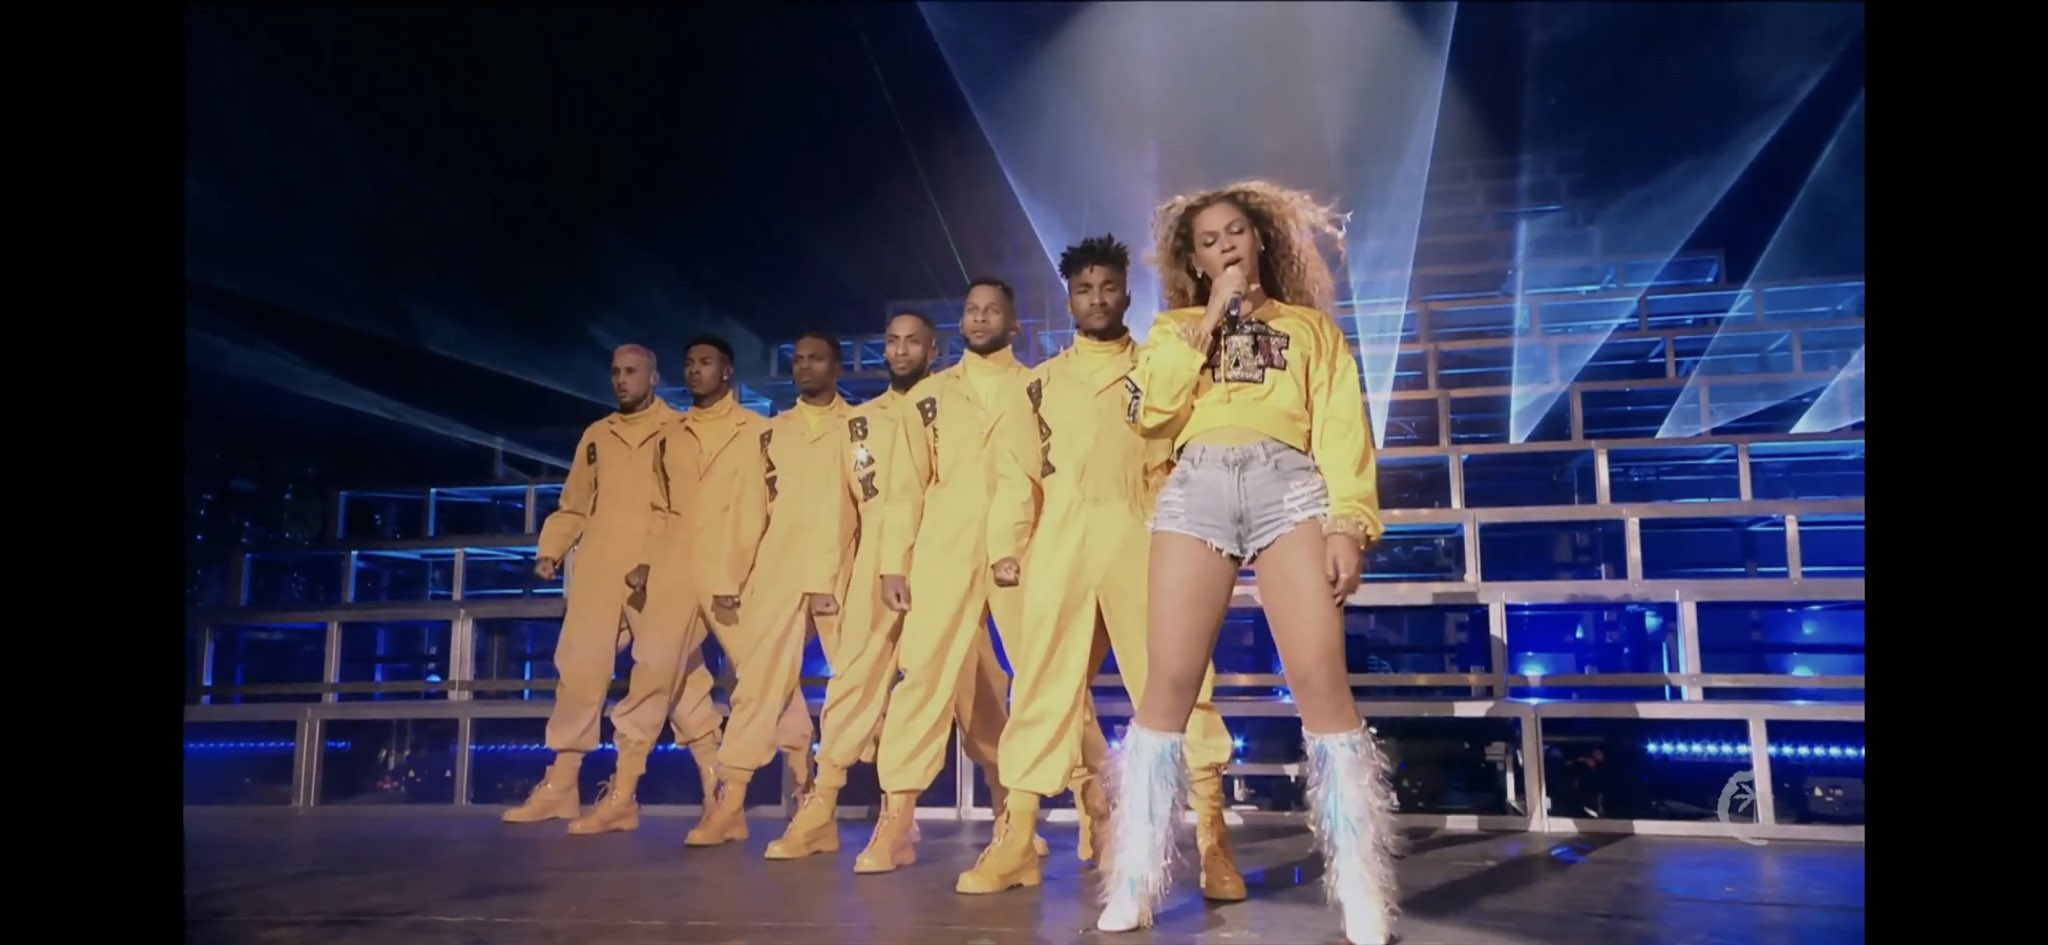 New Name Alert. #BEYCHELLA https://t.co/0KFsmZoXNt